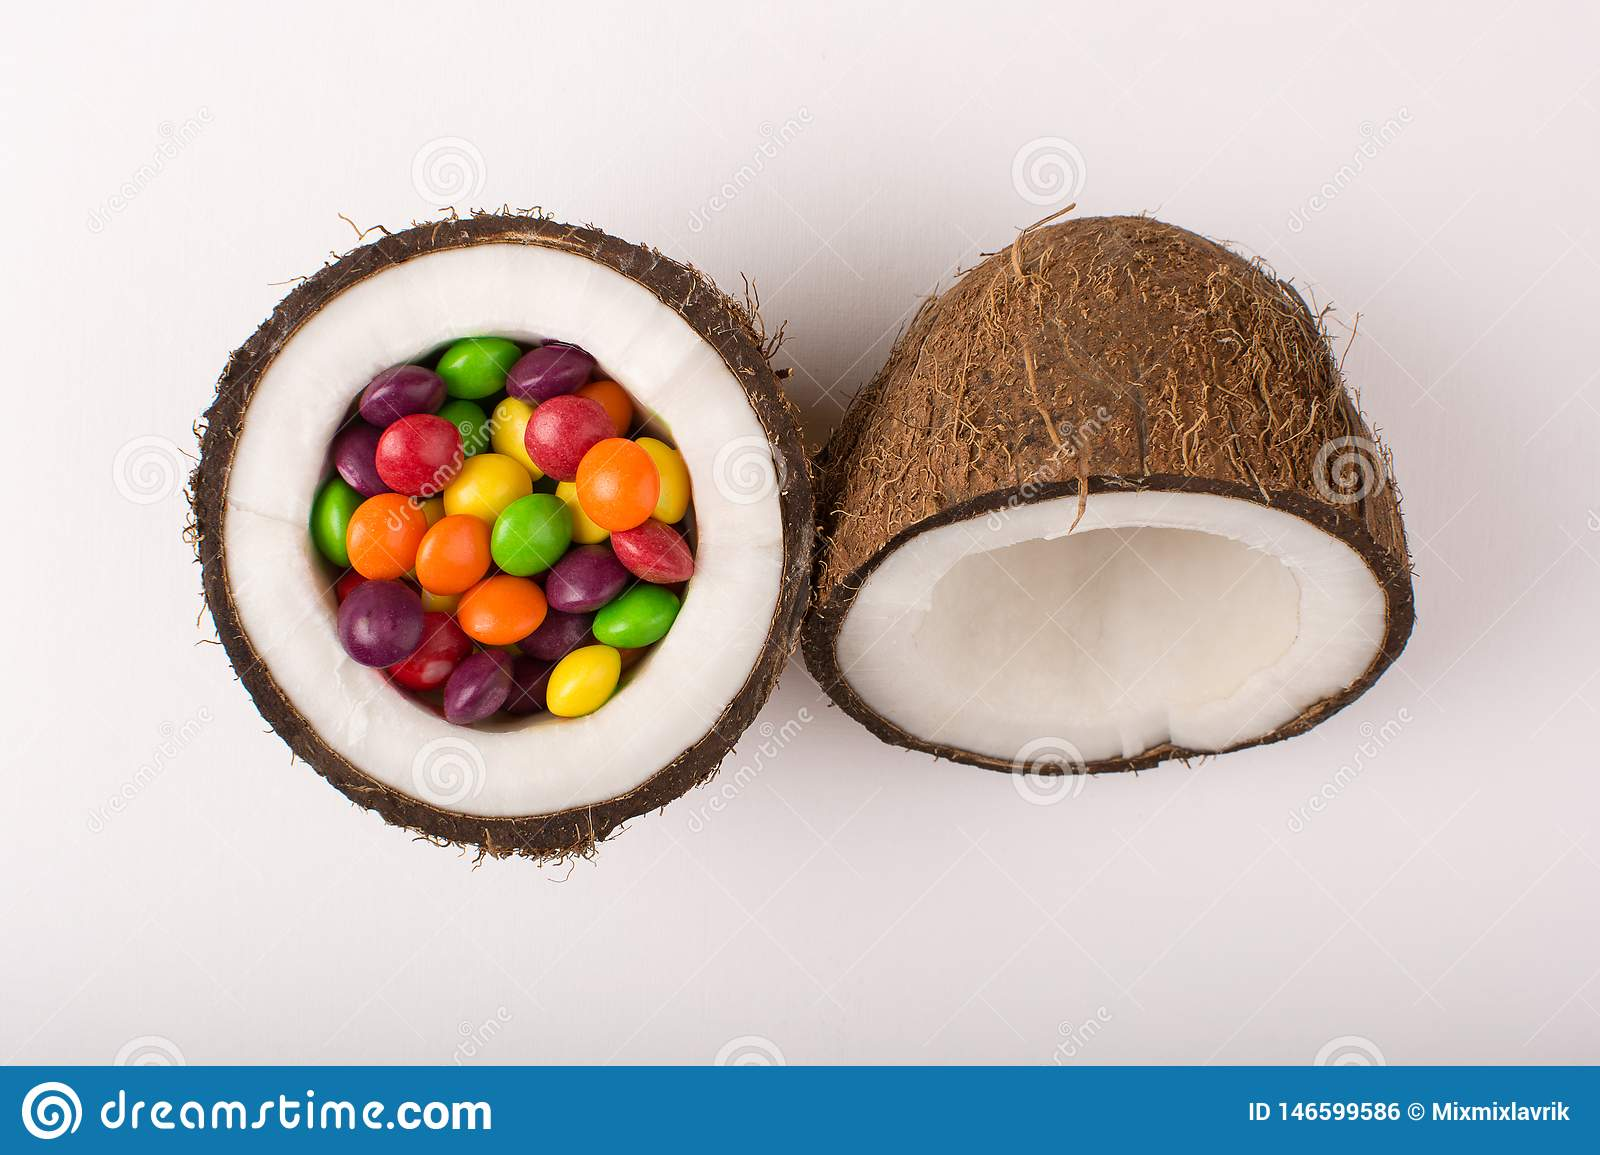 Coconut with colorful candies.